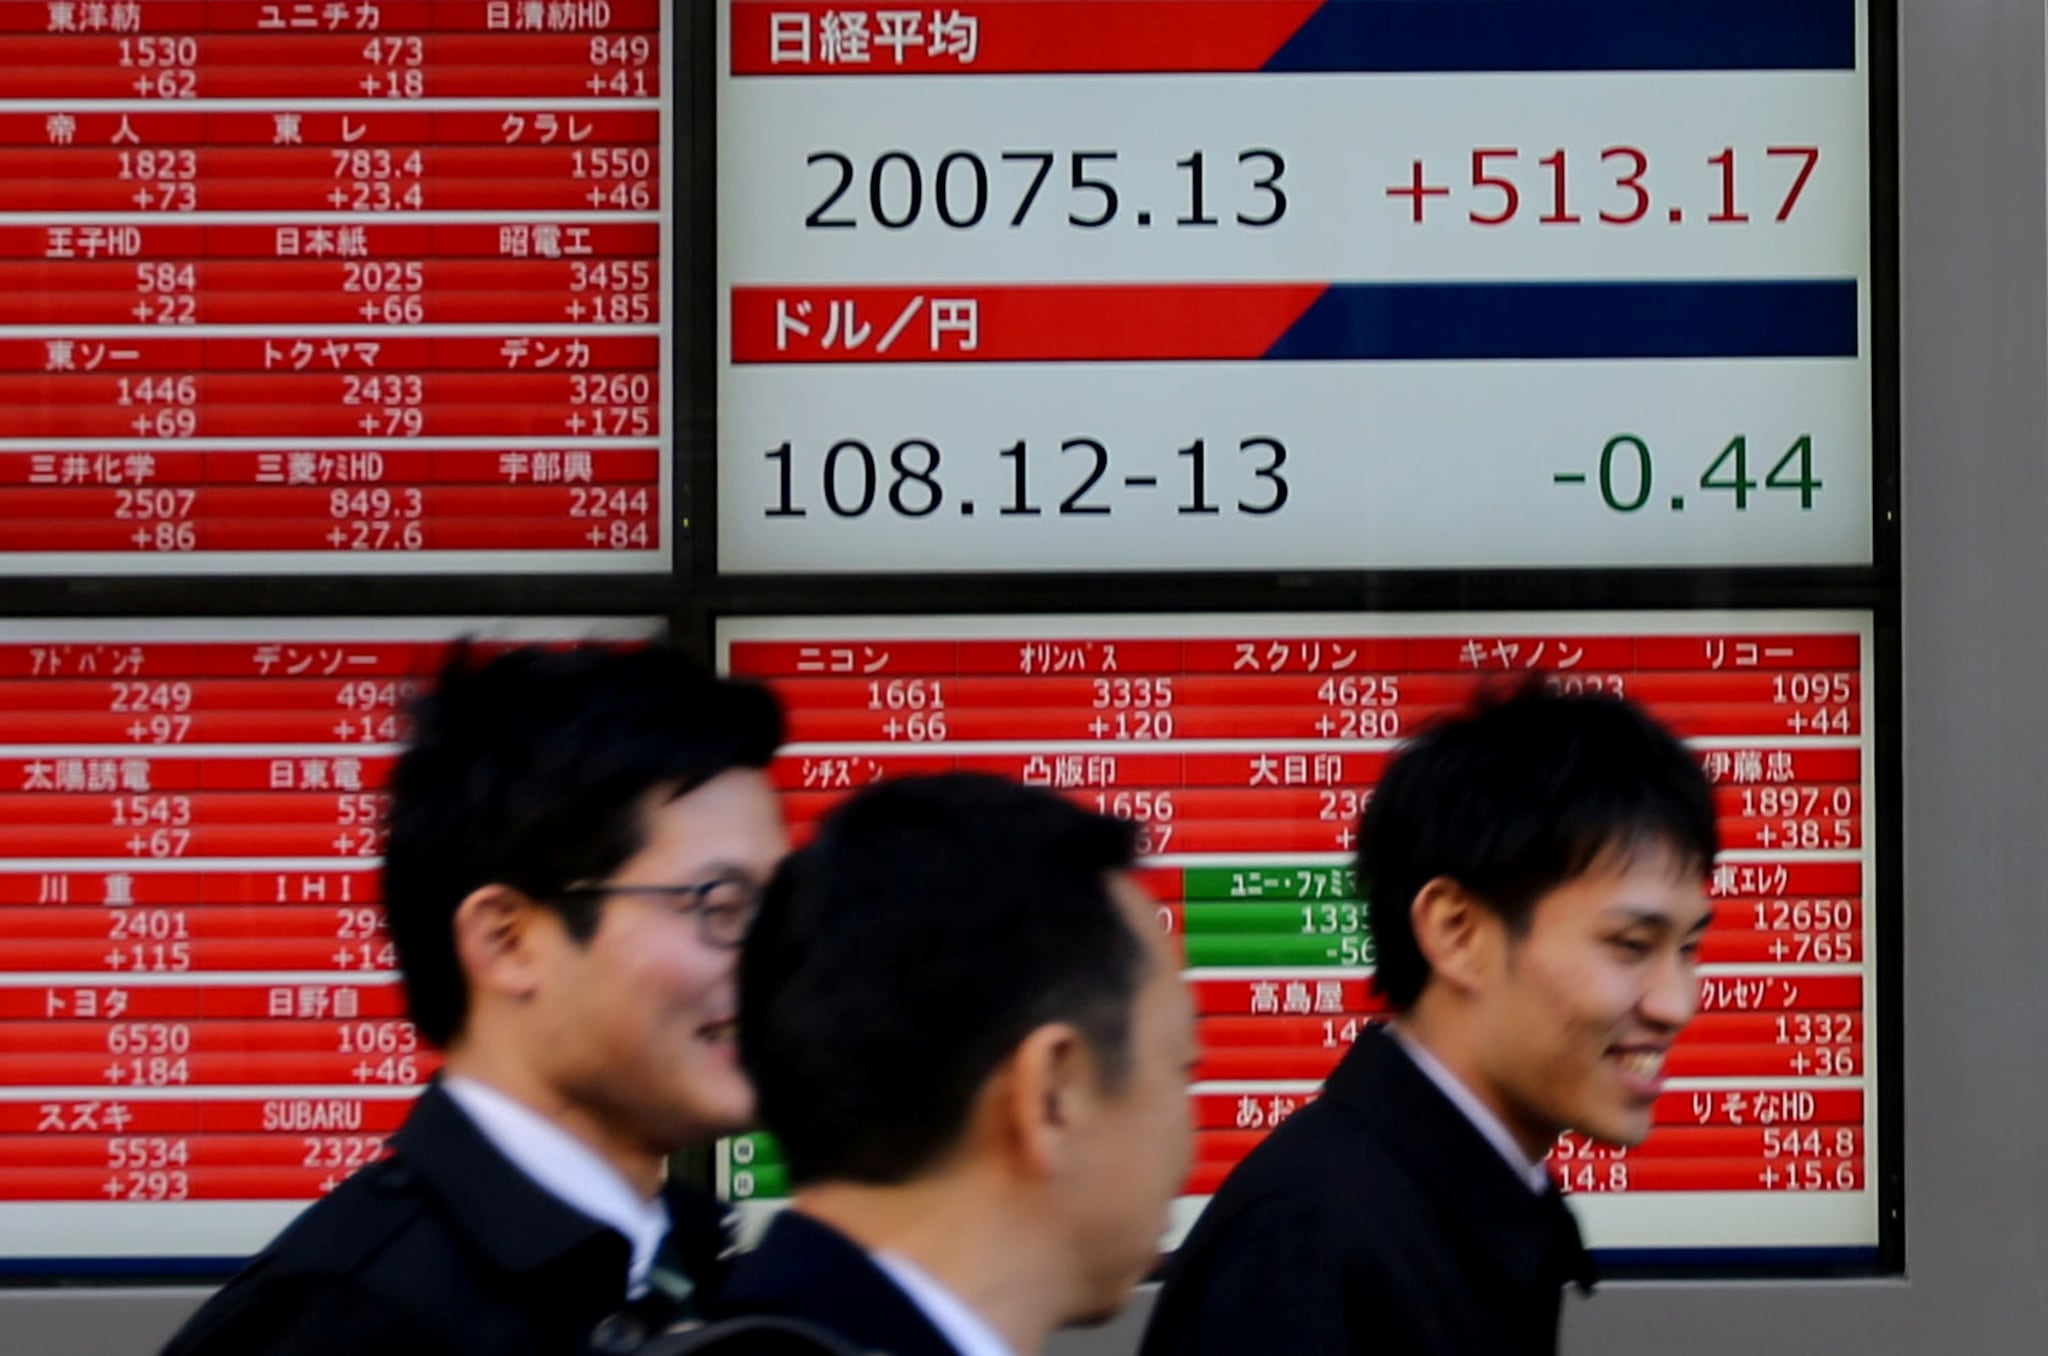 1. Asia: MSCI's broadest index of Asia-Pacific shares outside Japan ticked down 0.1 percent from a six-month high touched the previous day. Japan's Nikkei was also down 0.1 percent. (Image: Reuters)